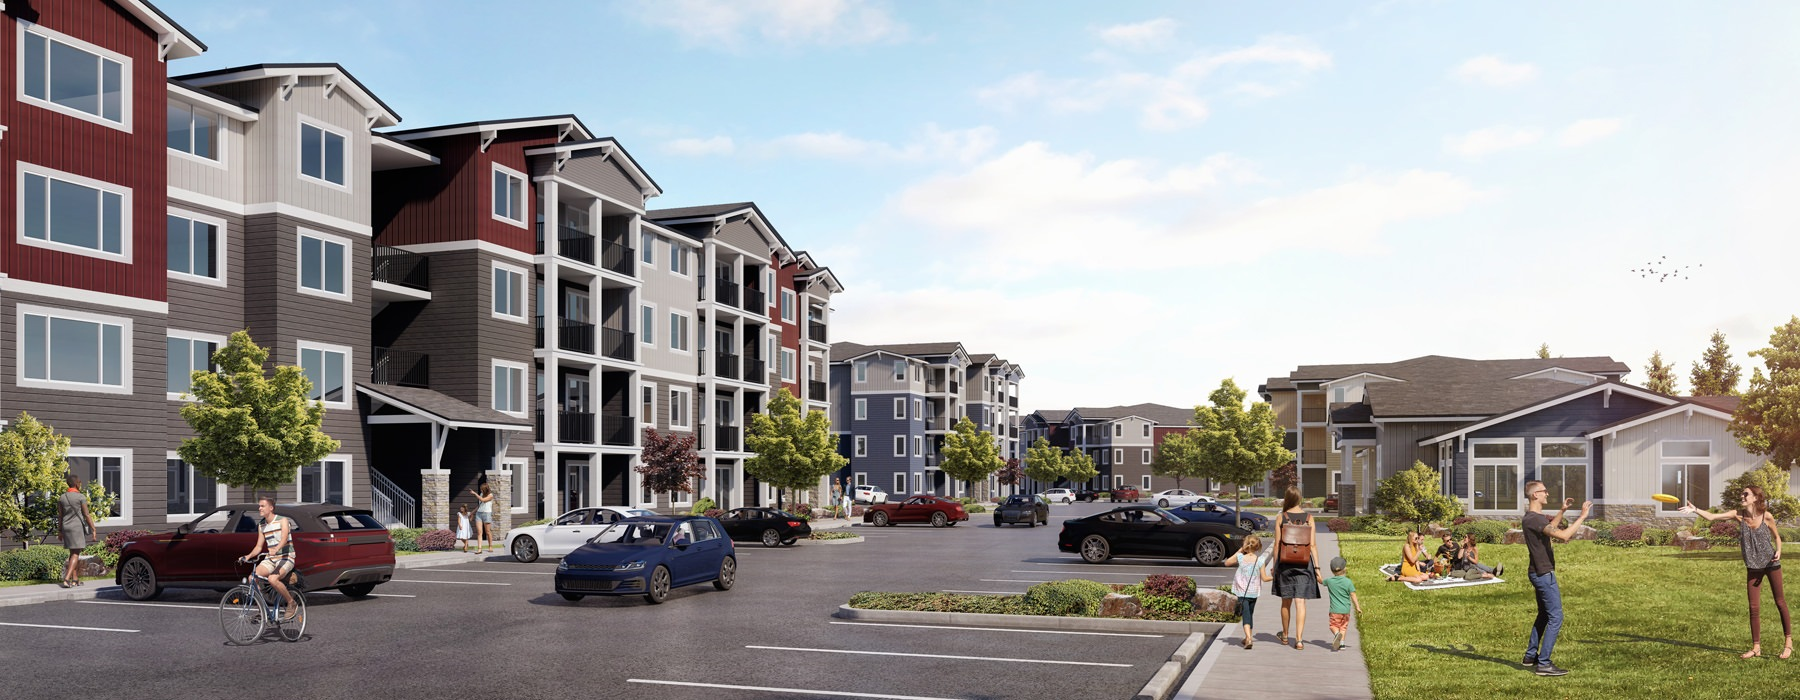 rendering of Park on 20th Apartments exterior and park across the street